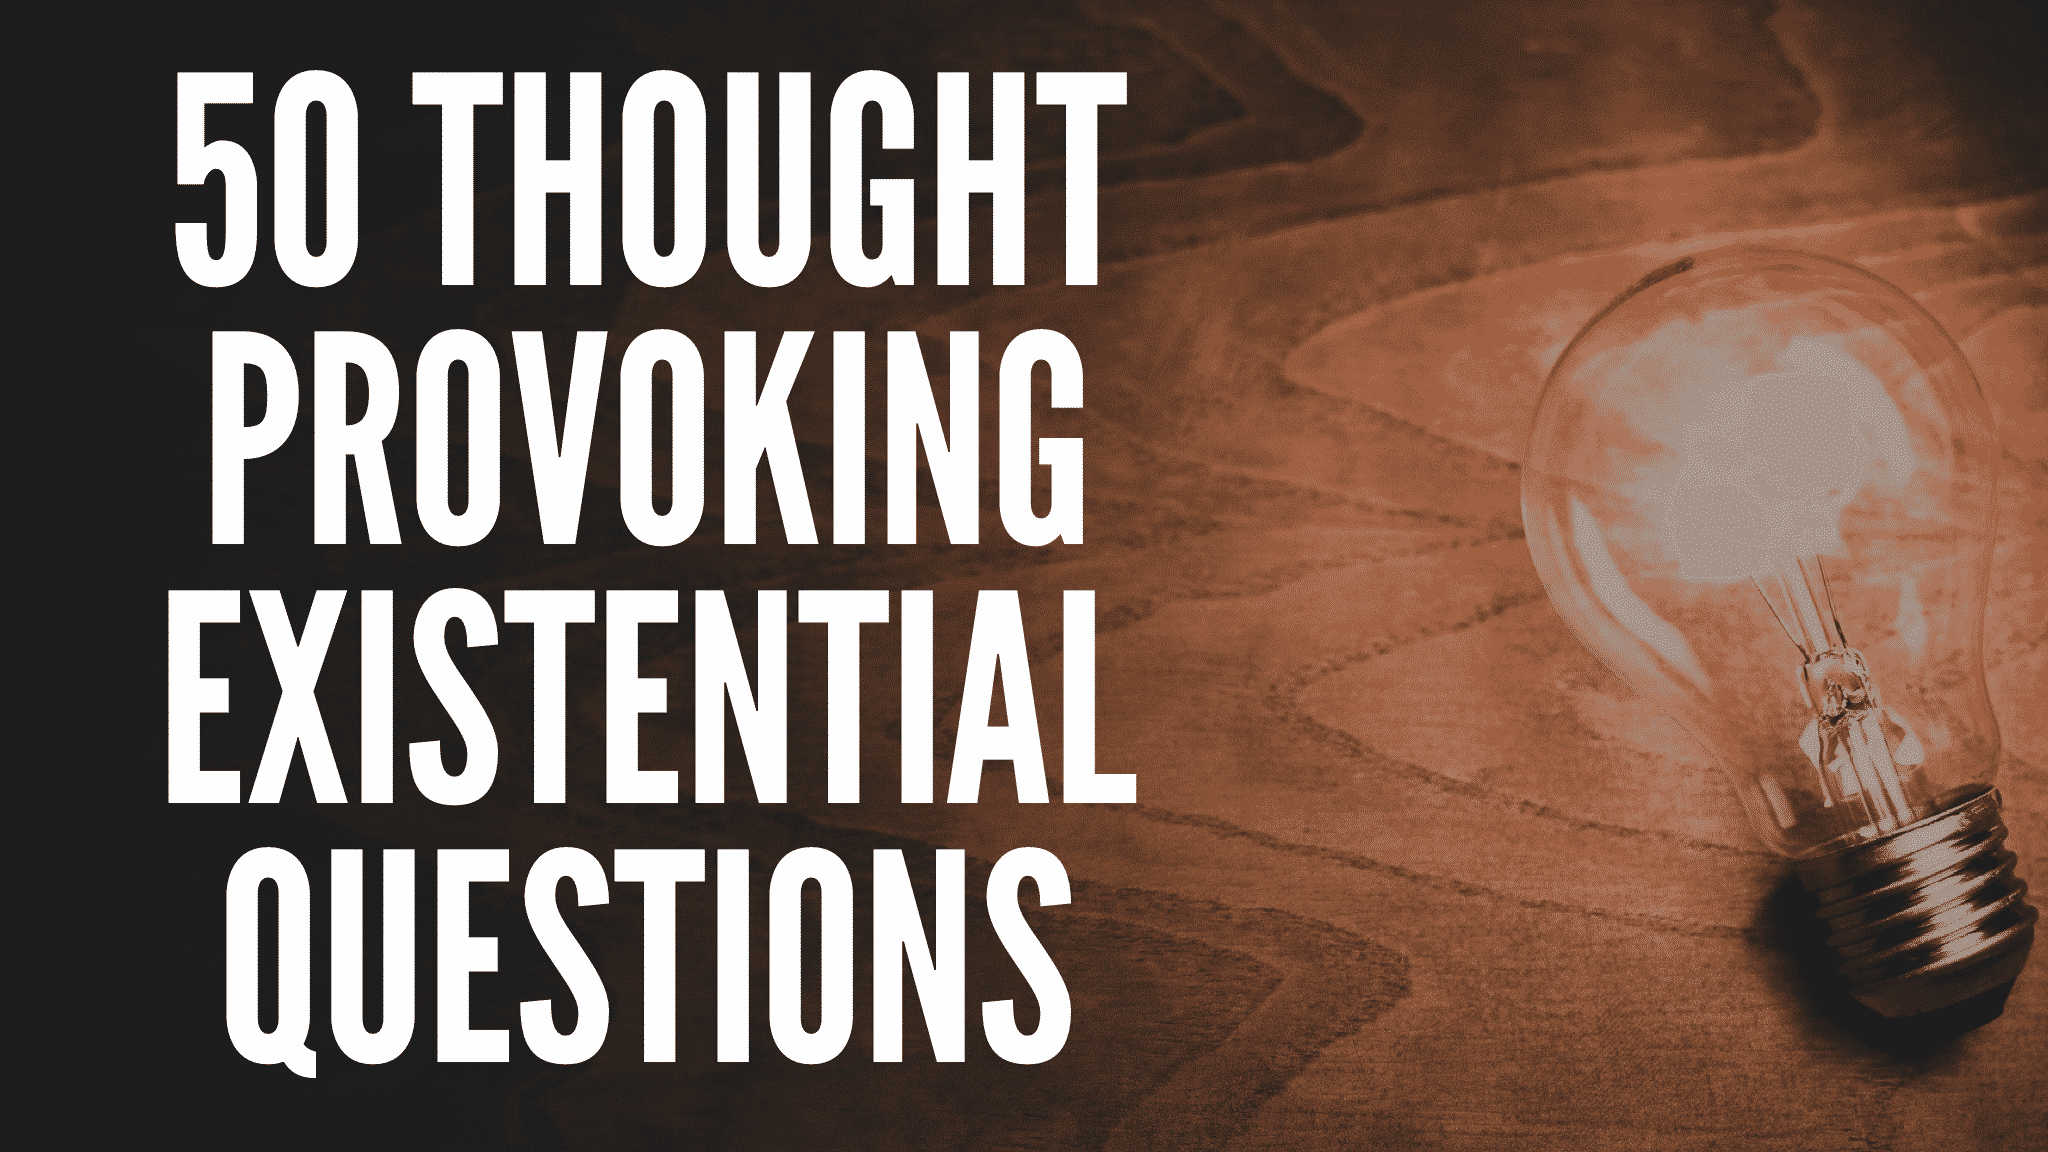 50 Thought Provoking Existential Questions